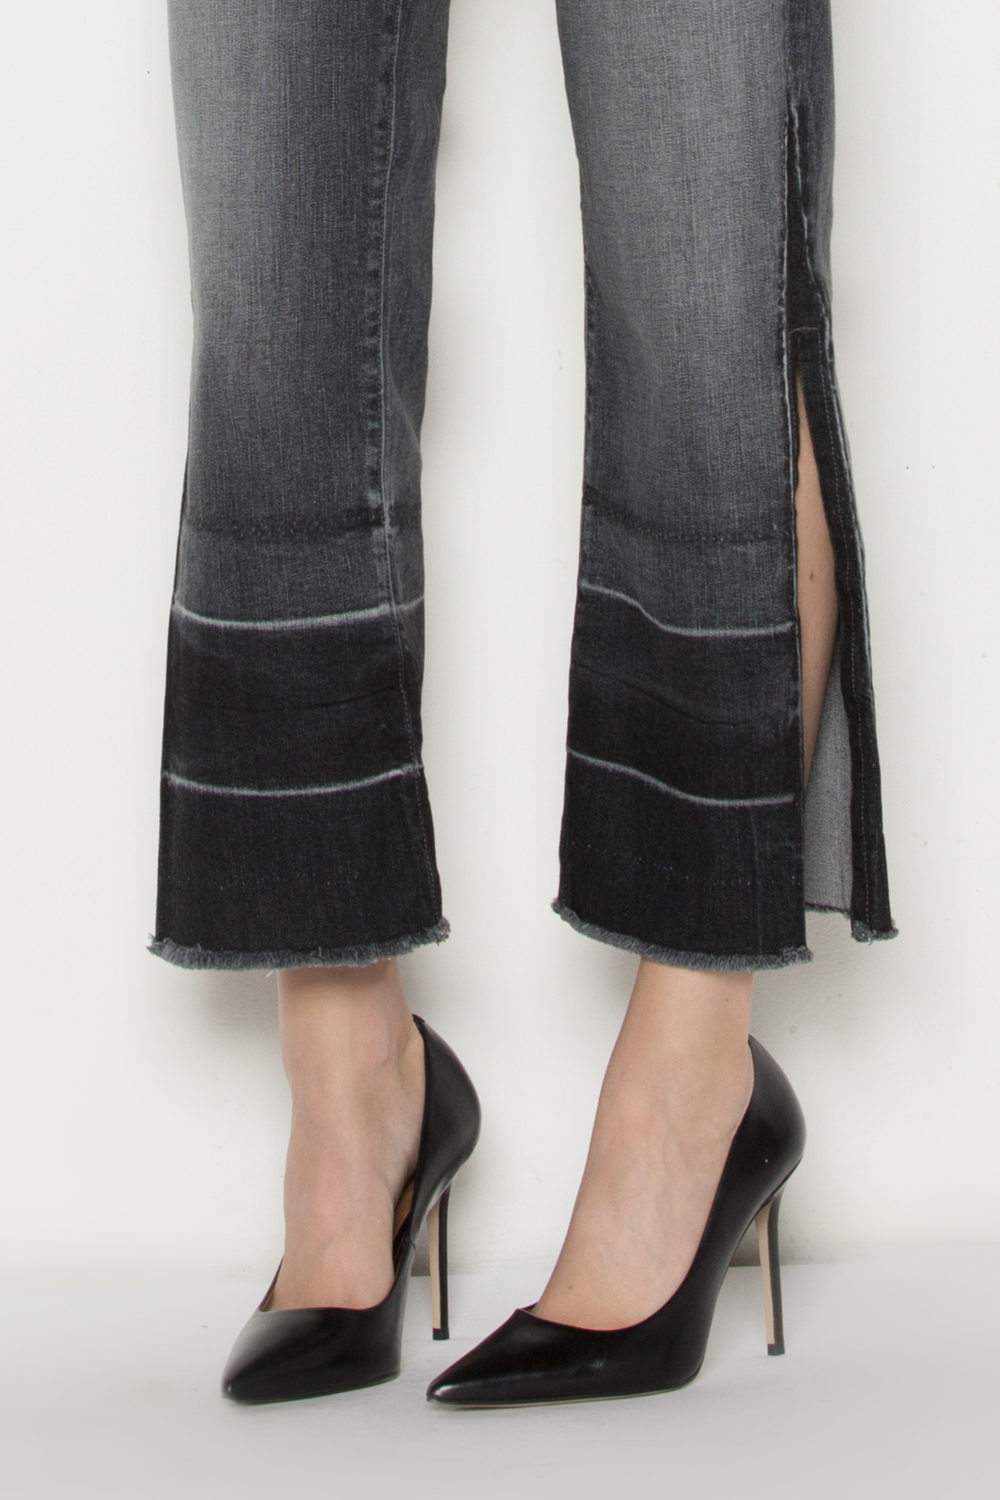 OFF BEAT FLARE IN BLACK CURRENT